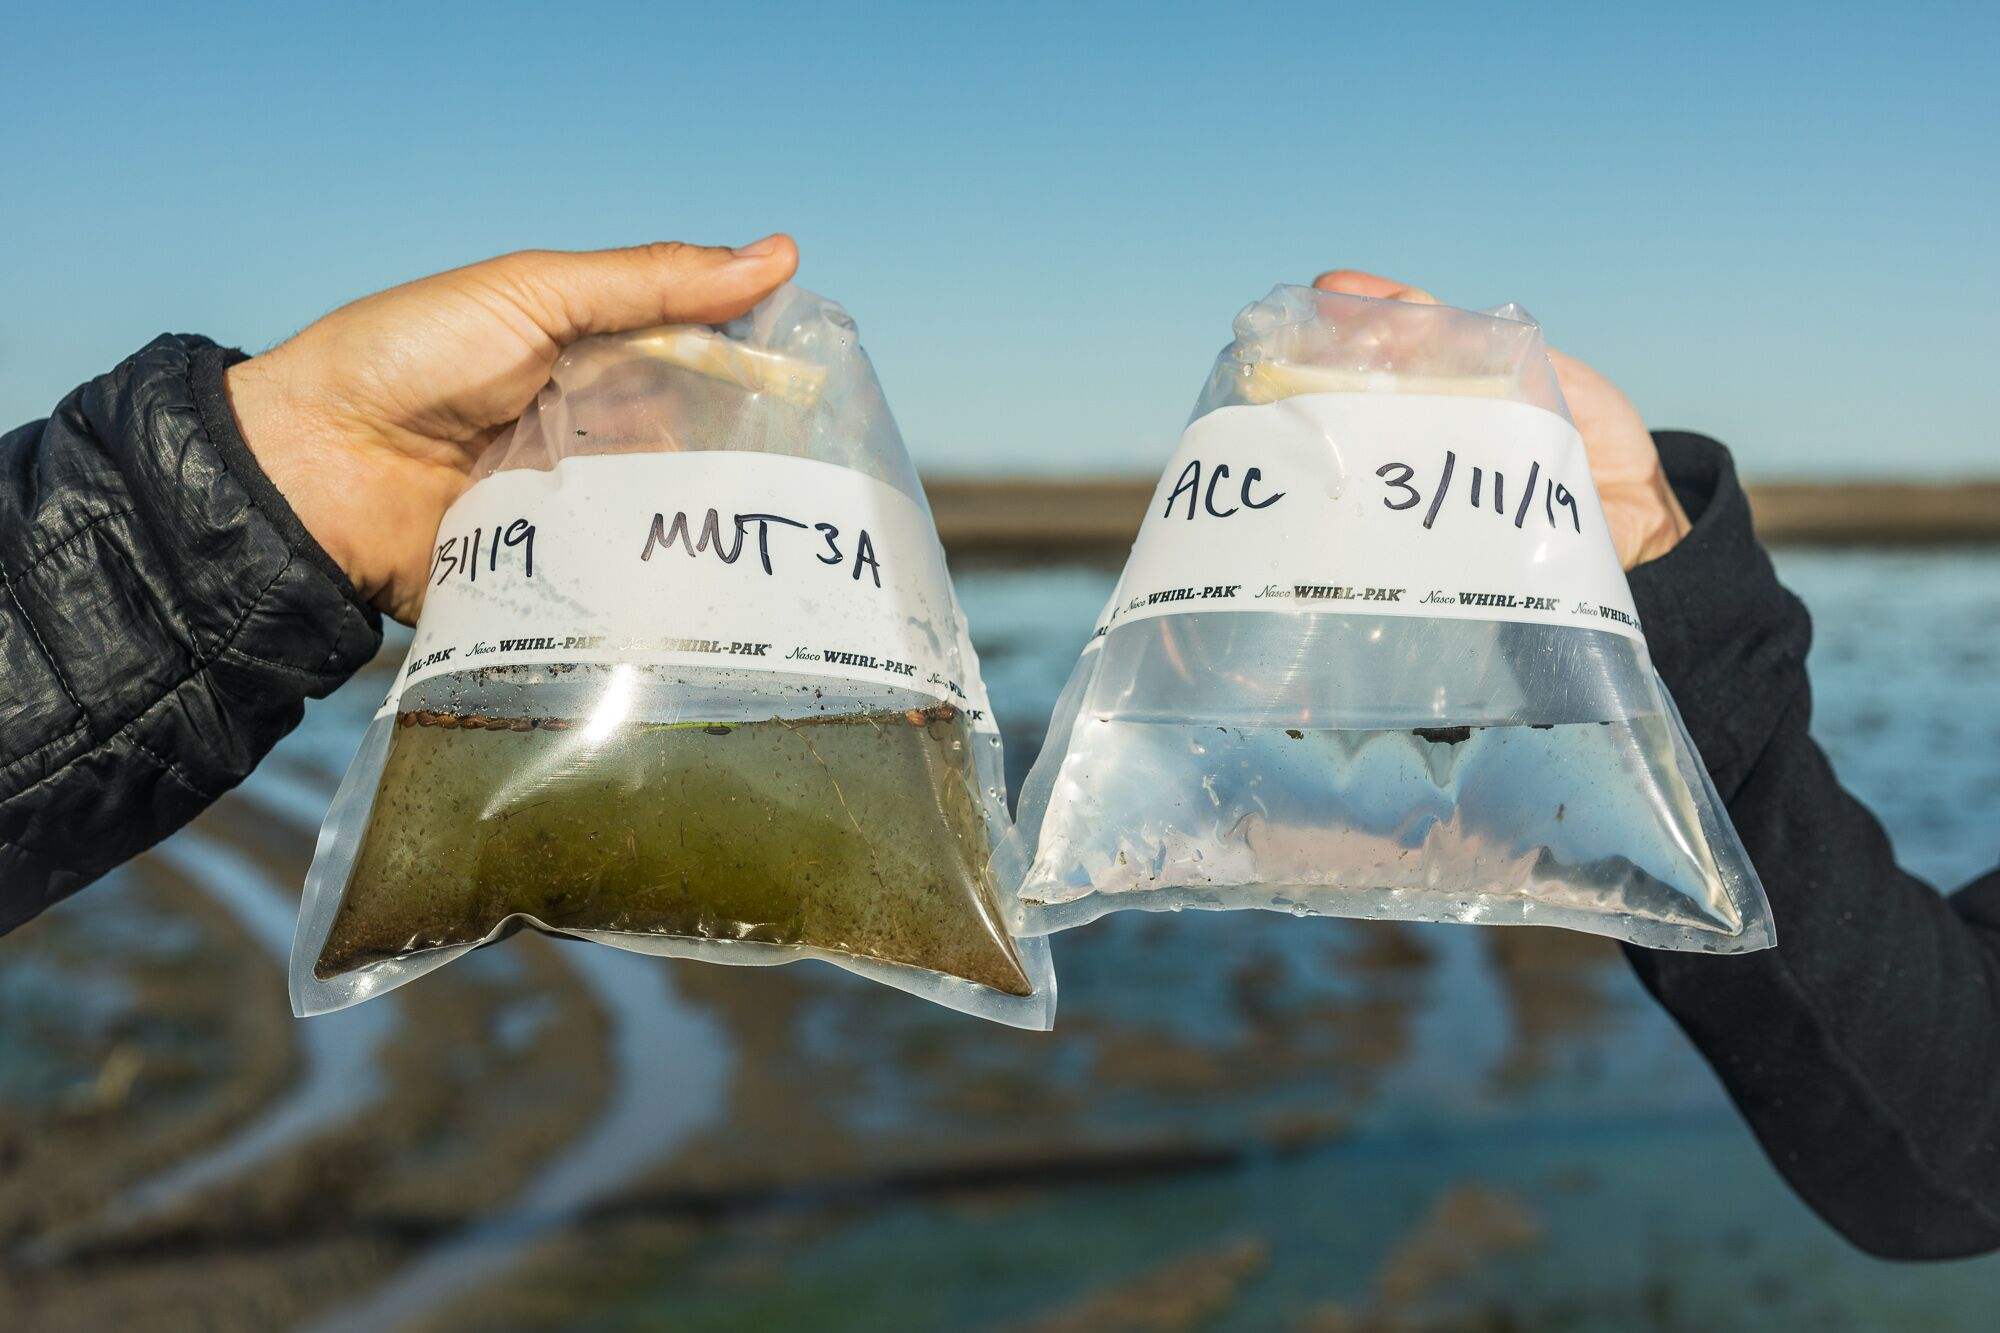 On the left, a water sample taken from a flooded rice field is bursting with zooplankton. On the right, a water sample taken from the Sacramento River on the same day contains very little food for young salmon.